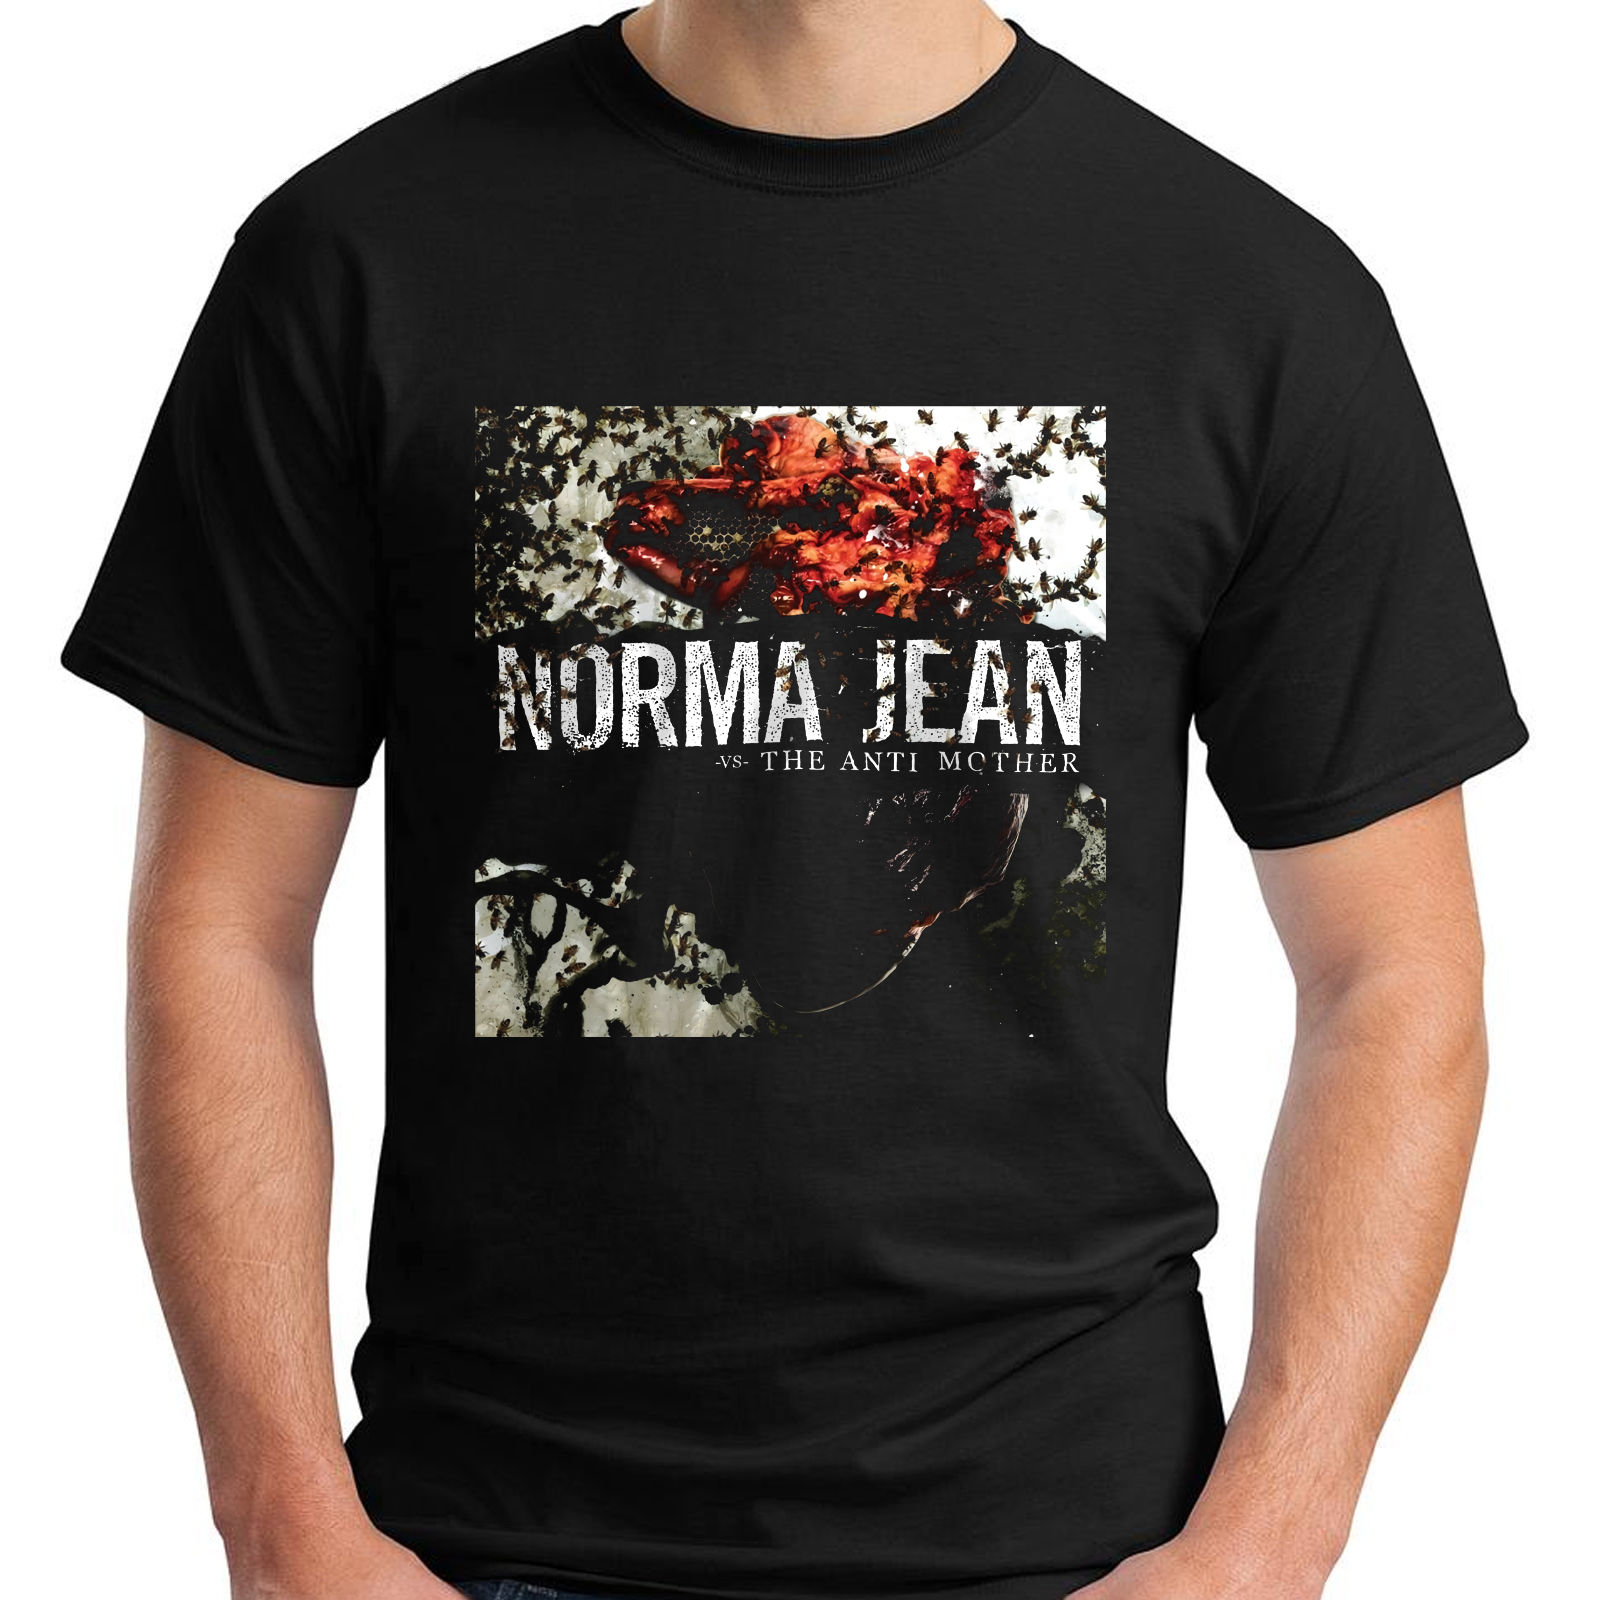 NORMA JEAN The Anti Mother Metalcore Band Sleeve Black Mens T-Shirt Size S-3XL T Shirts Casual Brand Clothing Cotton